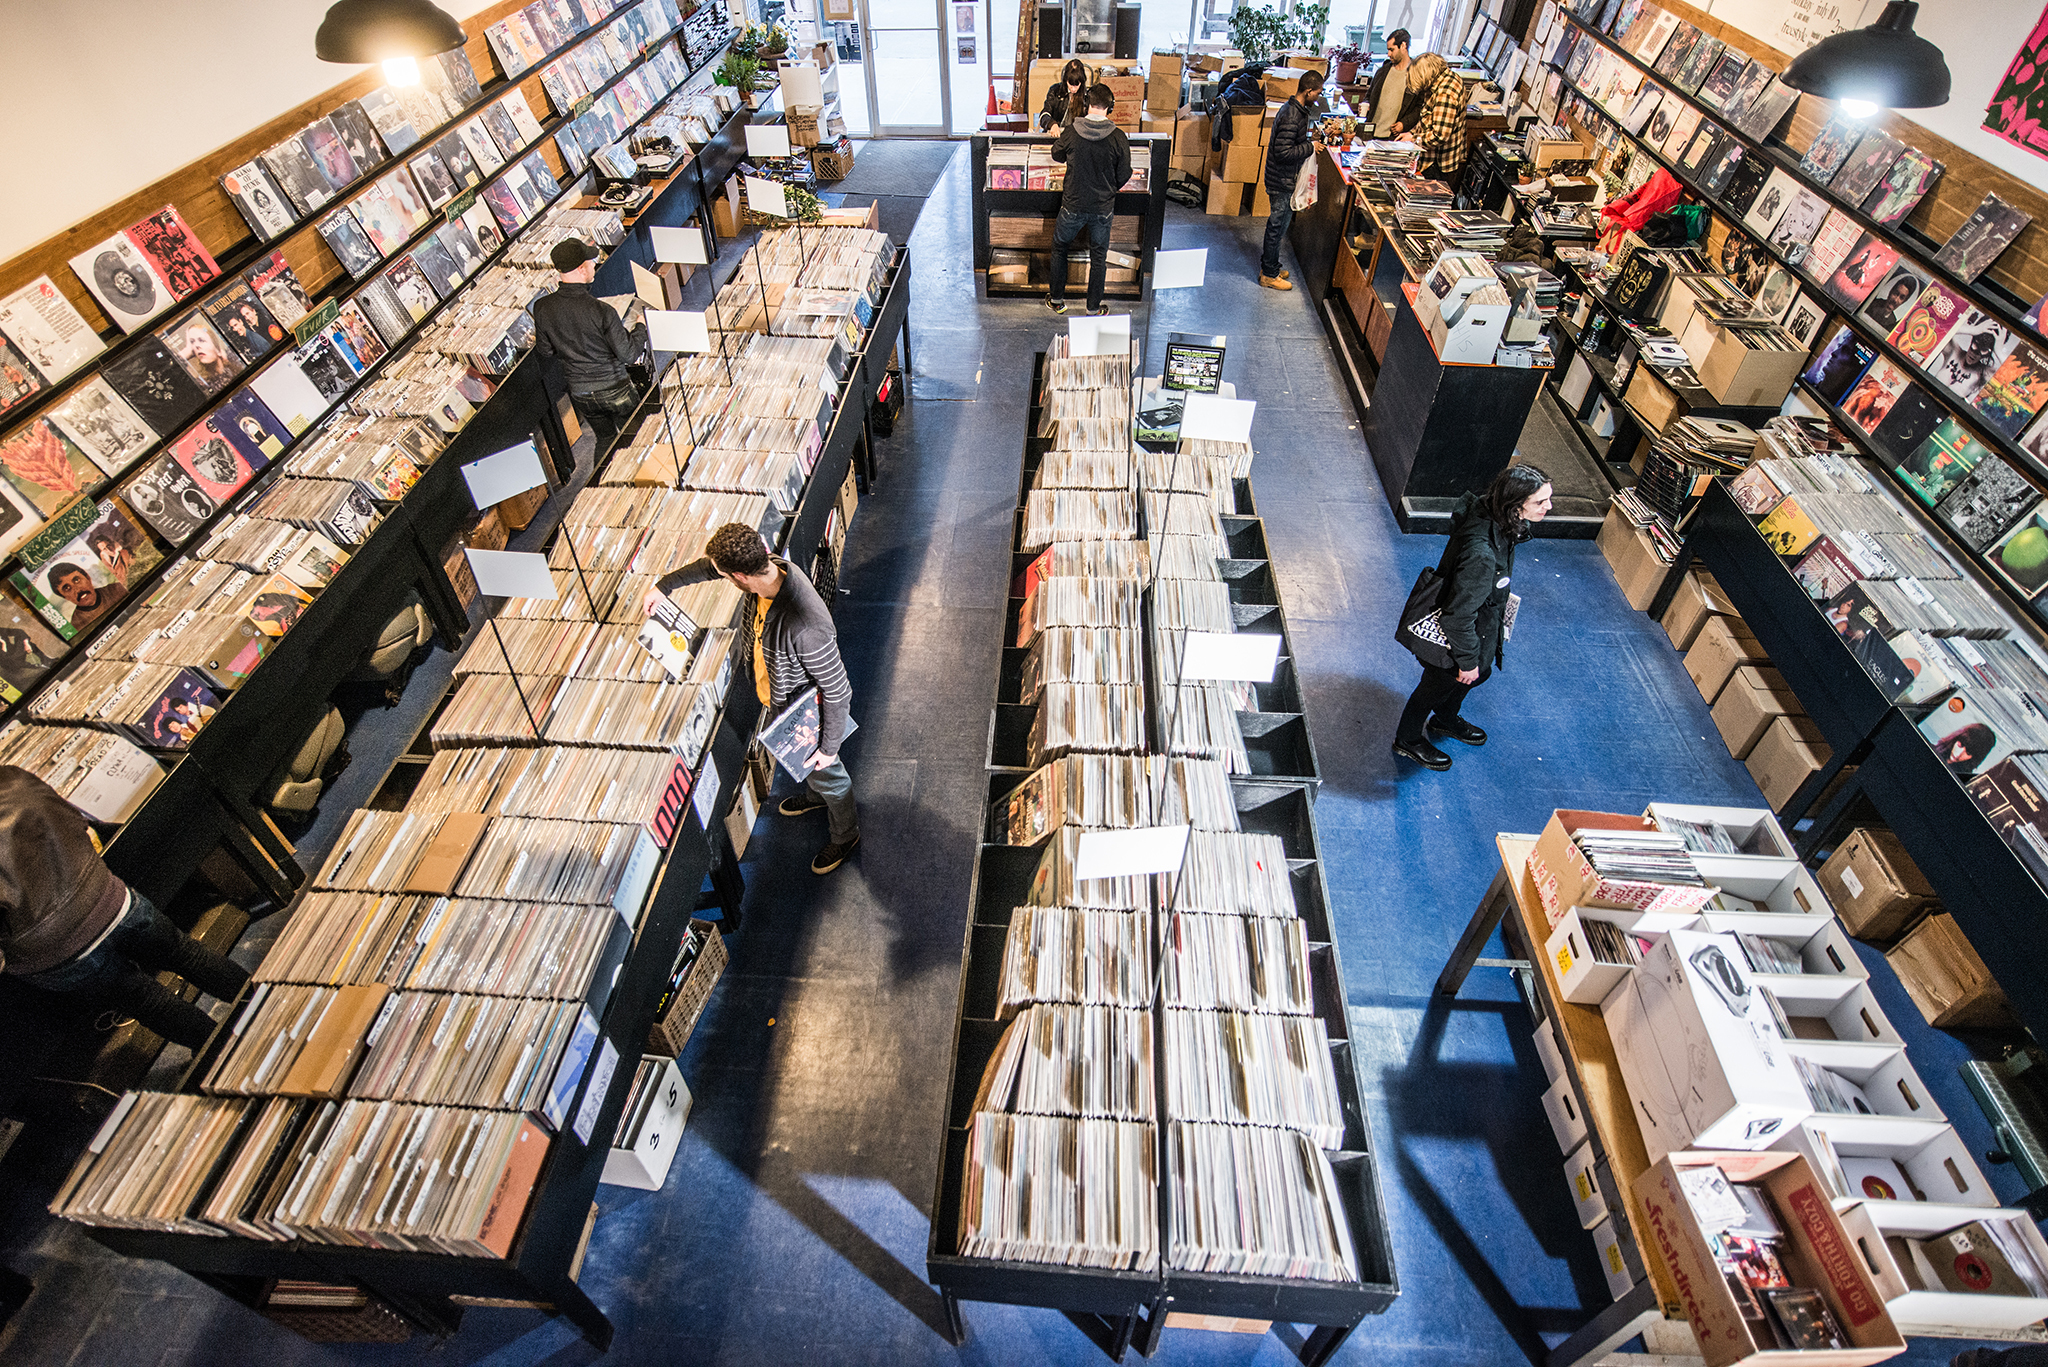 Academy Records Annex, record store day